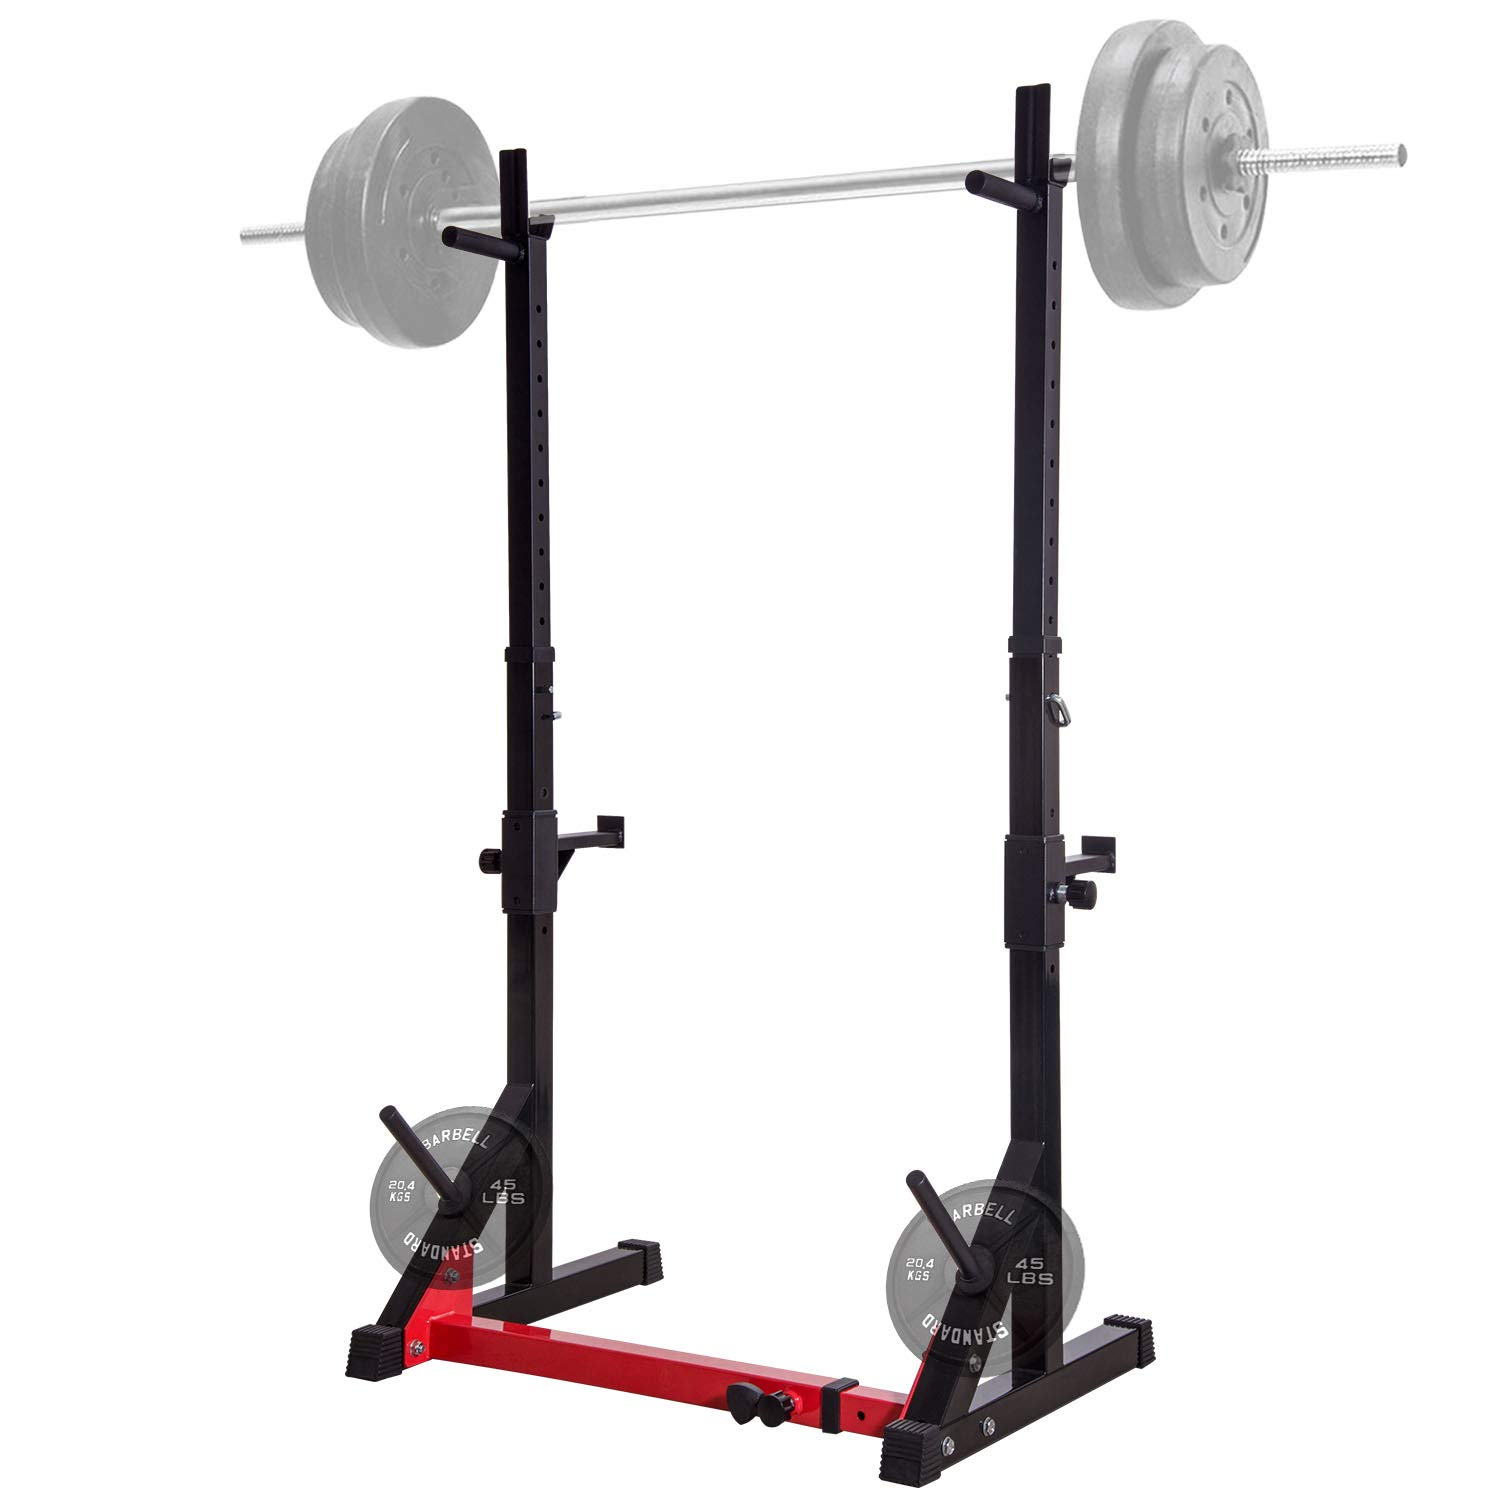 Ollieroo Multi-Function Squat Rack 480LBS Capacity Barbell Rack Adjustable Dip Stand Gym Family Fitness Weight Lifting Bench Press Dipping Station with Barbell Plate Rack, Height Range 46.8''-68.1''